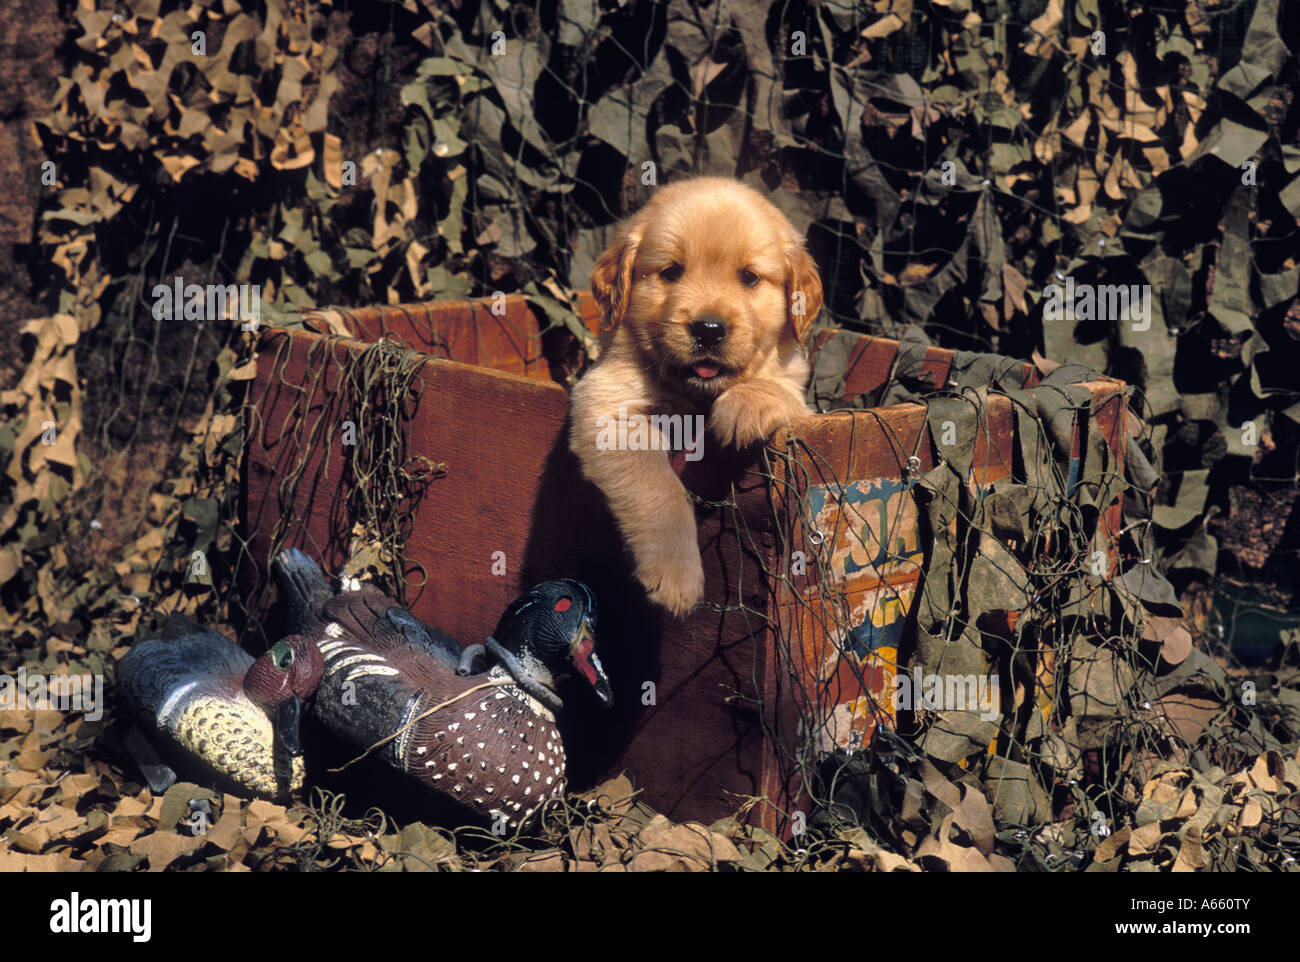 Golden Retriever Puppy Peering Out of Old Fruit Box Surrounded with Camouflage Netting and Duck Decoys - Stock Image